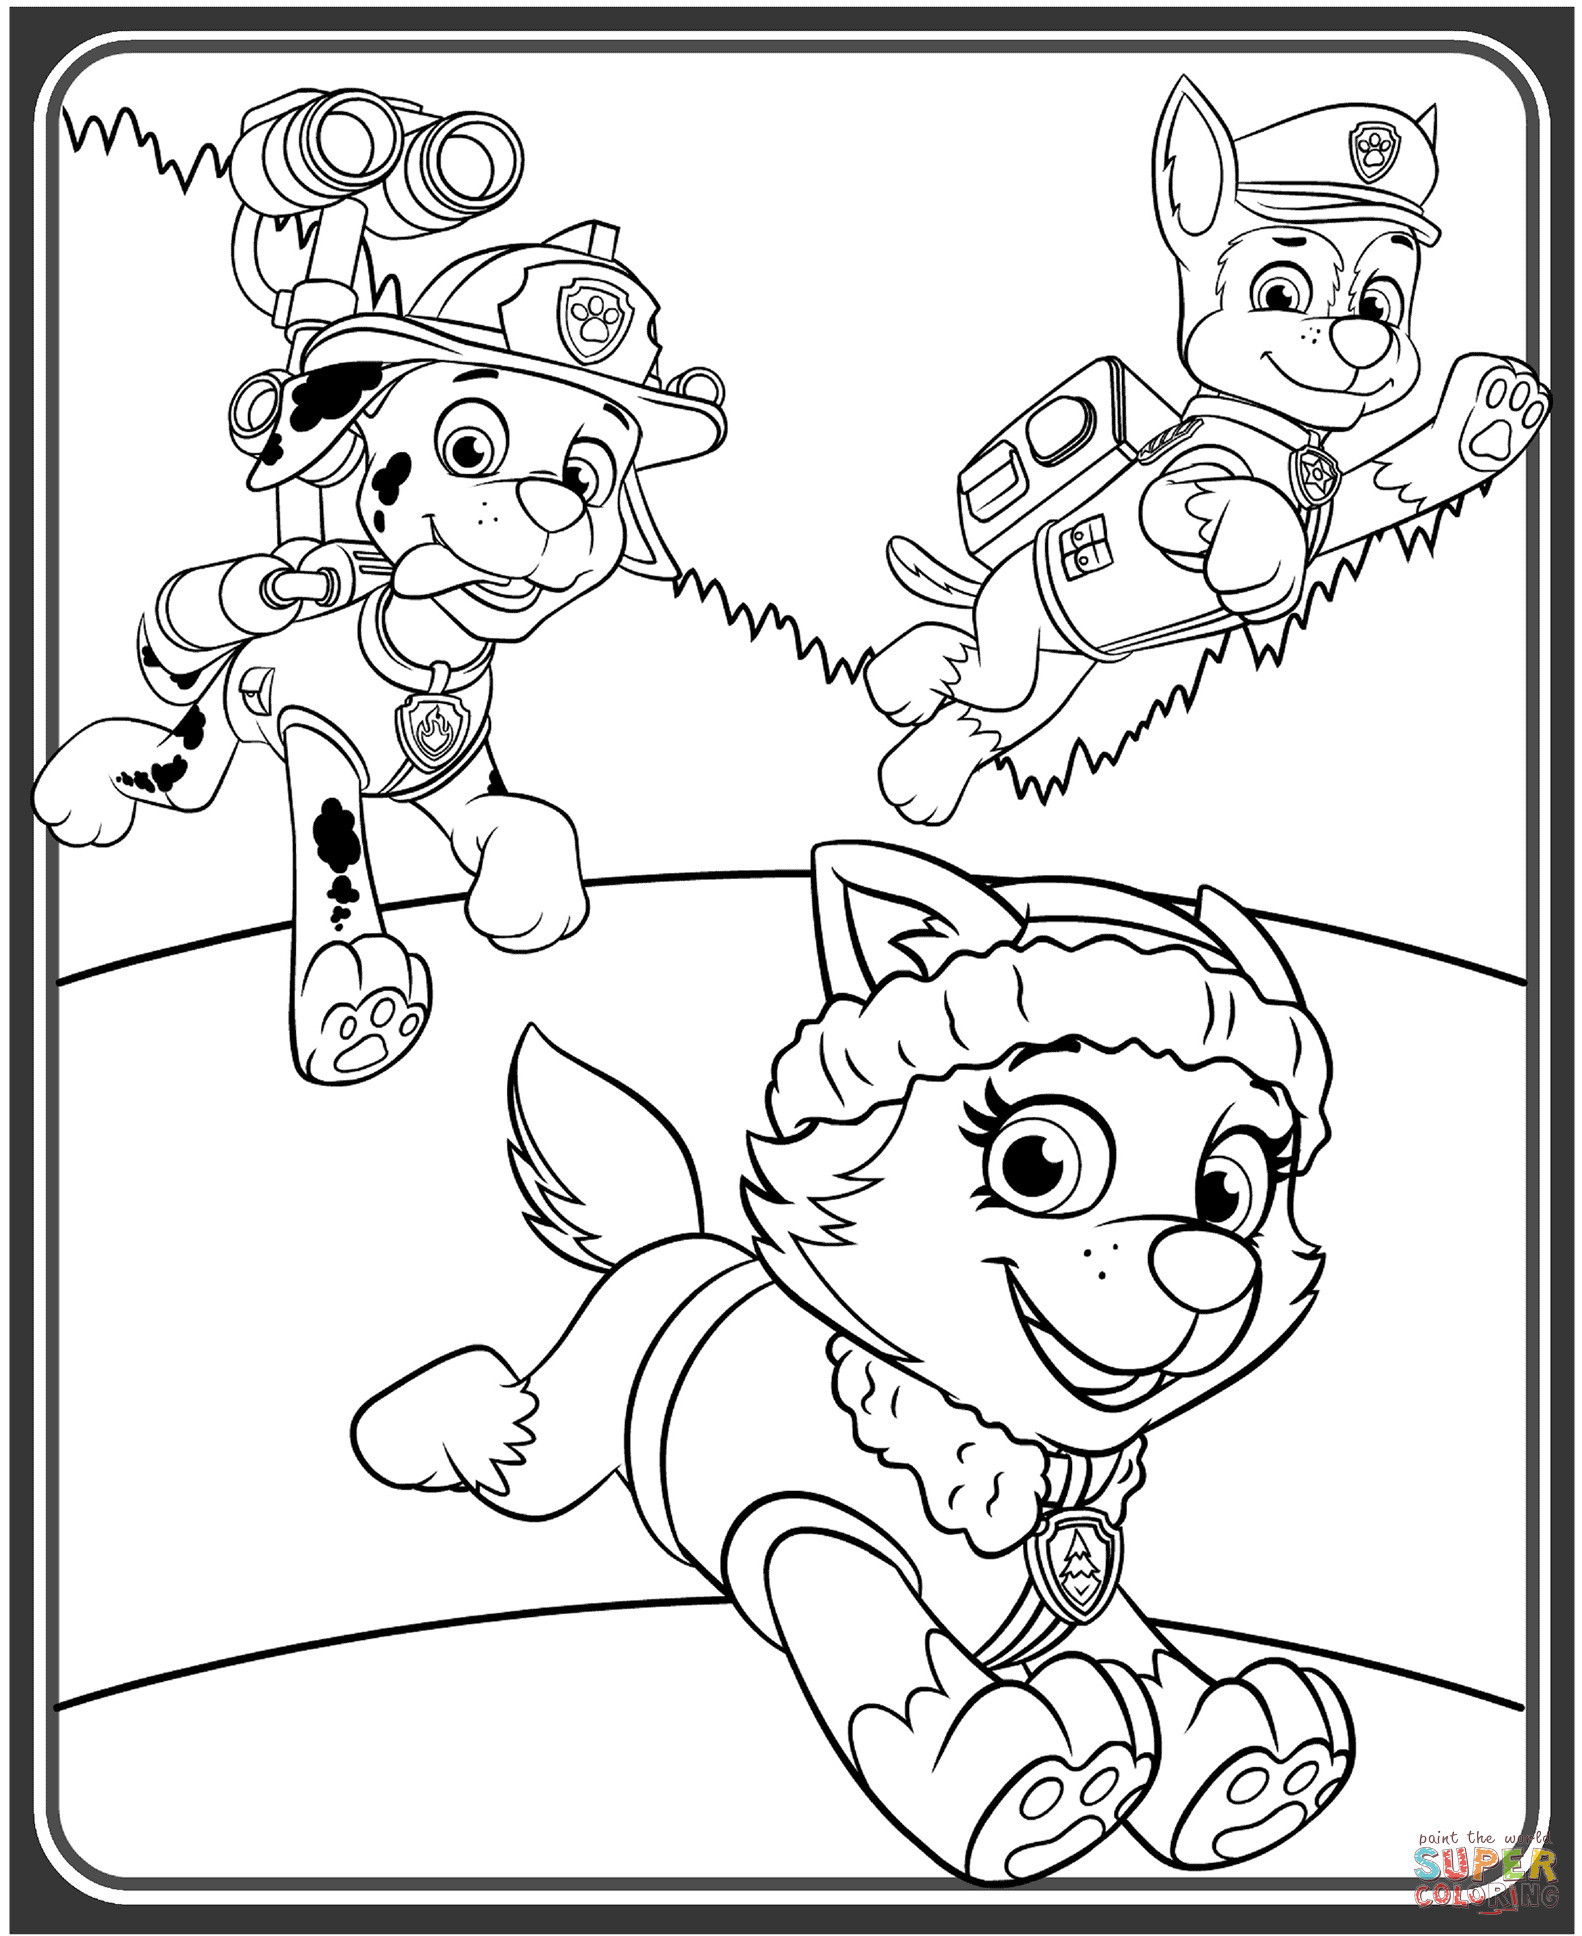 Paw Patrol Zentrale Ausmalbilder Inspirierend Last Chance Chase Coloring Page the Truth About Paw Patrol 8216 Das Bild